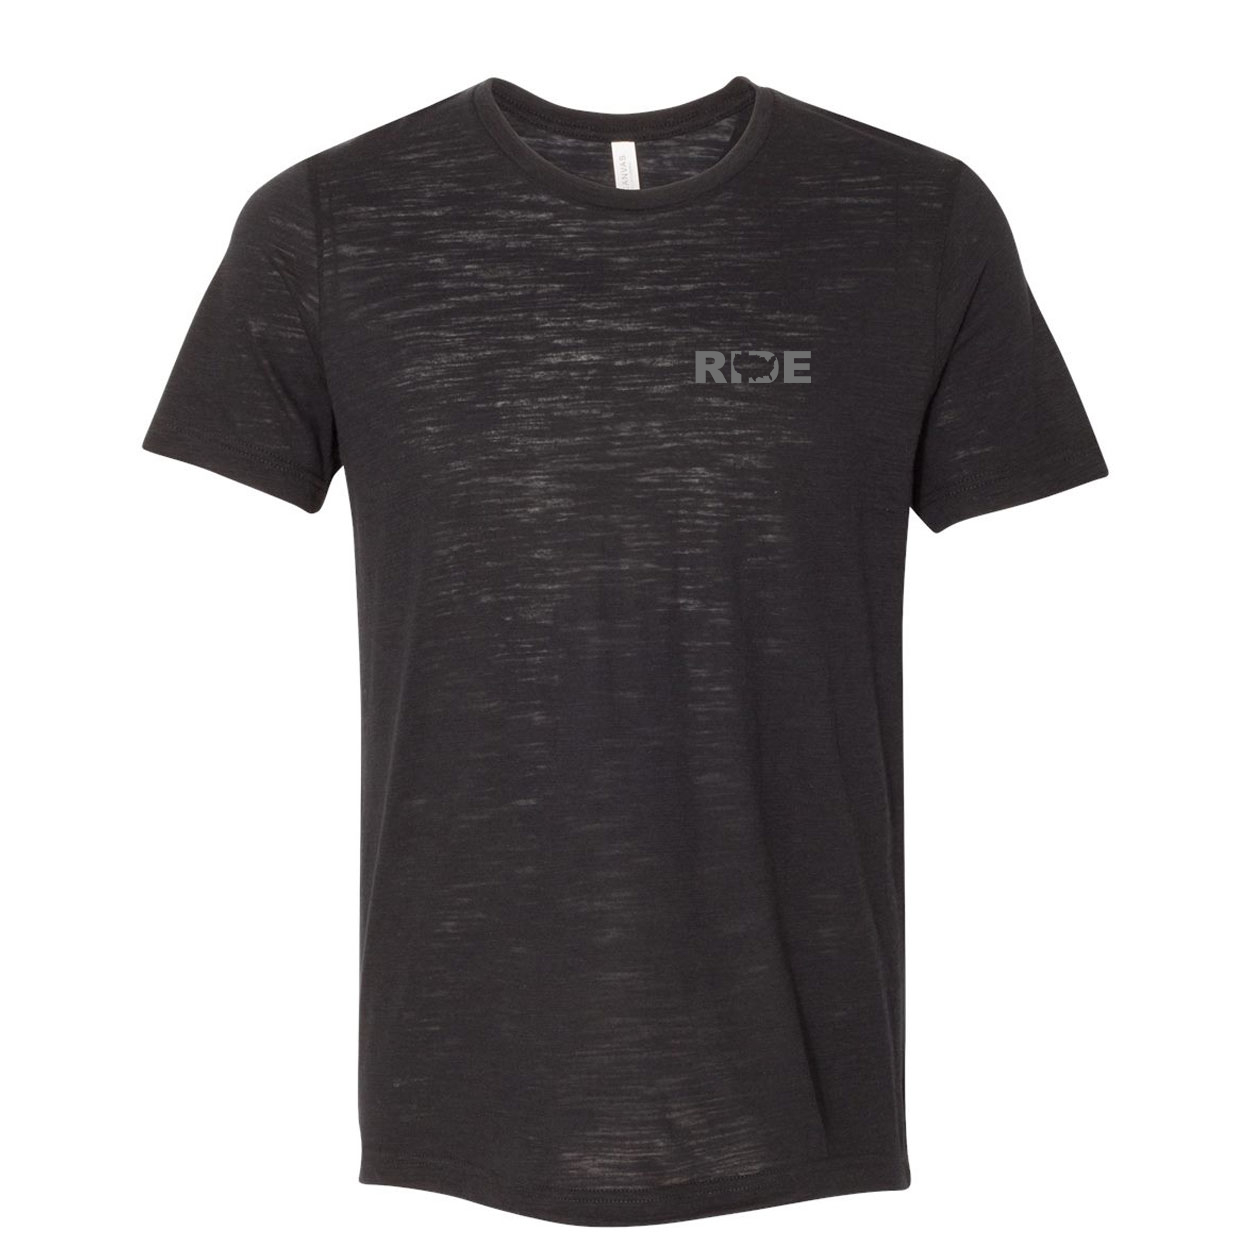 Ride United States Night Out Unisex Premium Texture T-Shirt Solid Black Slub (Gray Logo)